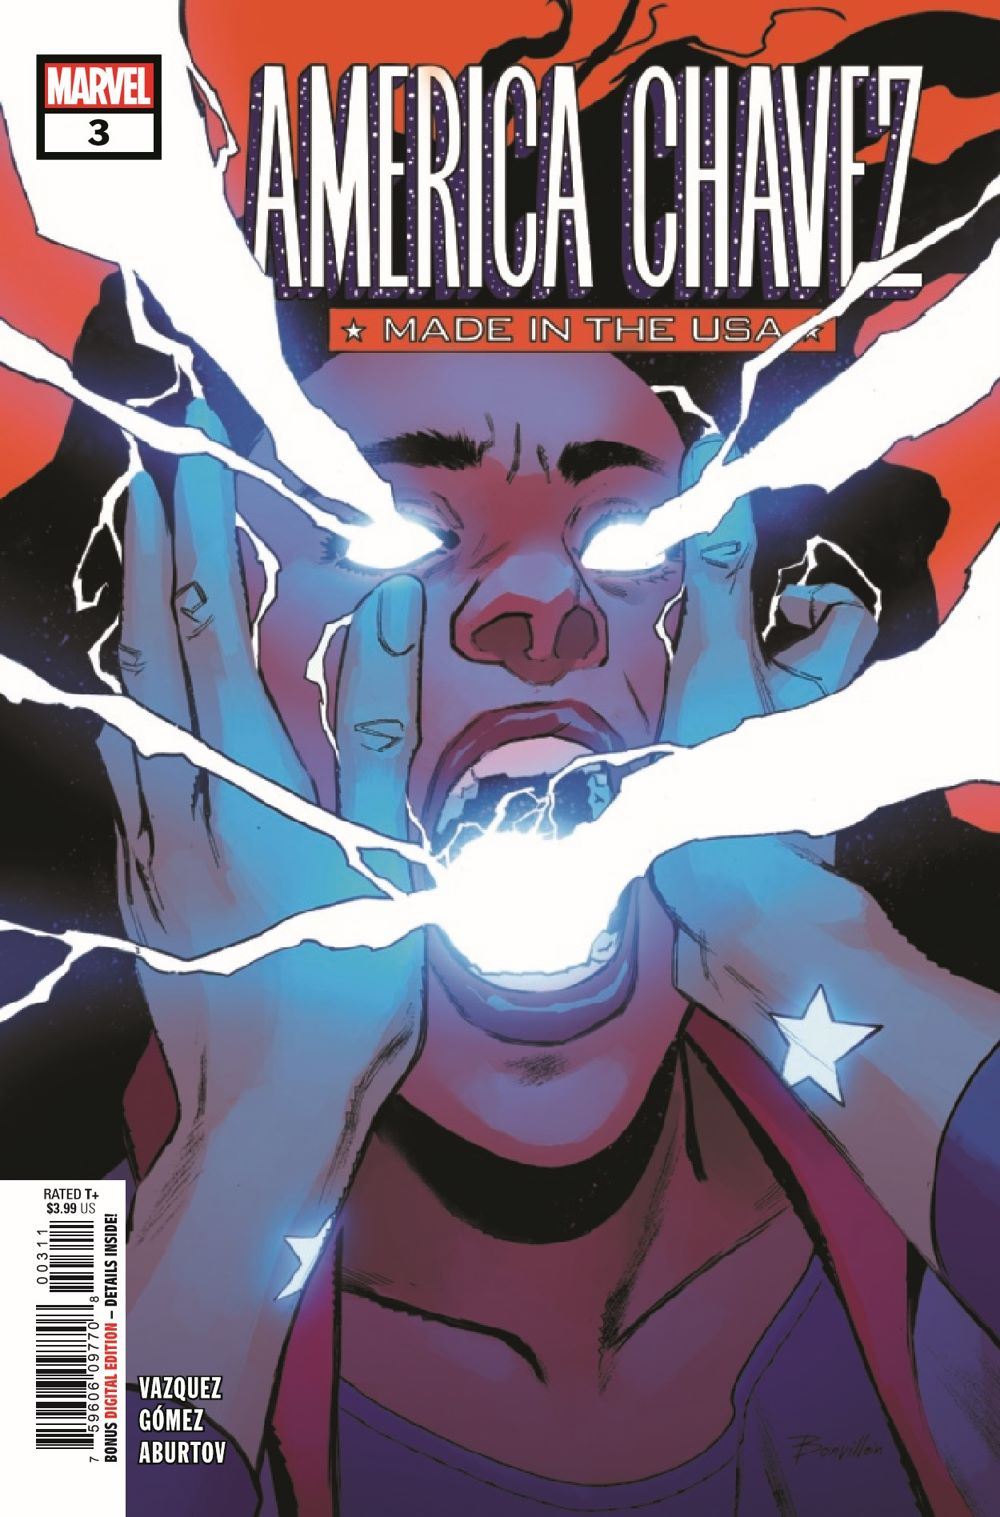 AMERCHAVEZUSA2021003_Preview-1 ComicList Previews: AMERICA CHAVEZ MADE IN THE U.S.A. #3 (OF 5)